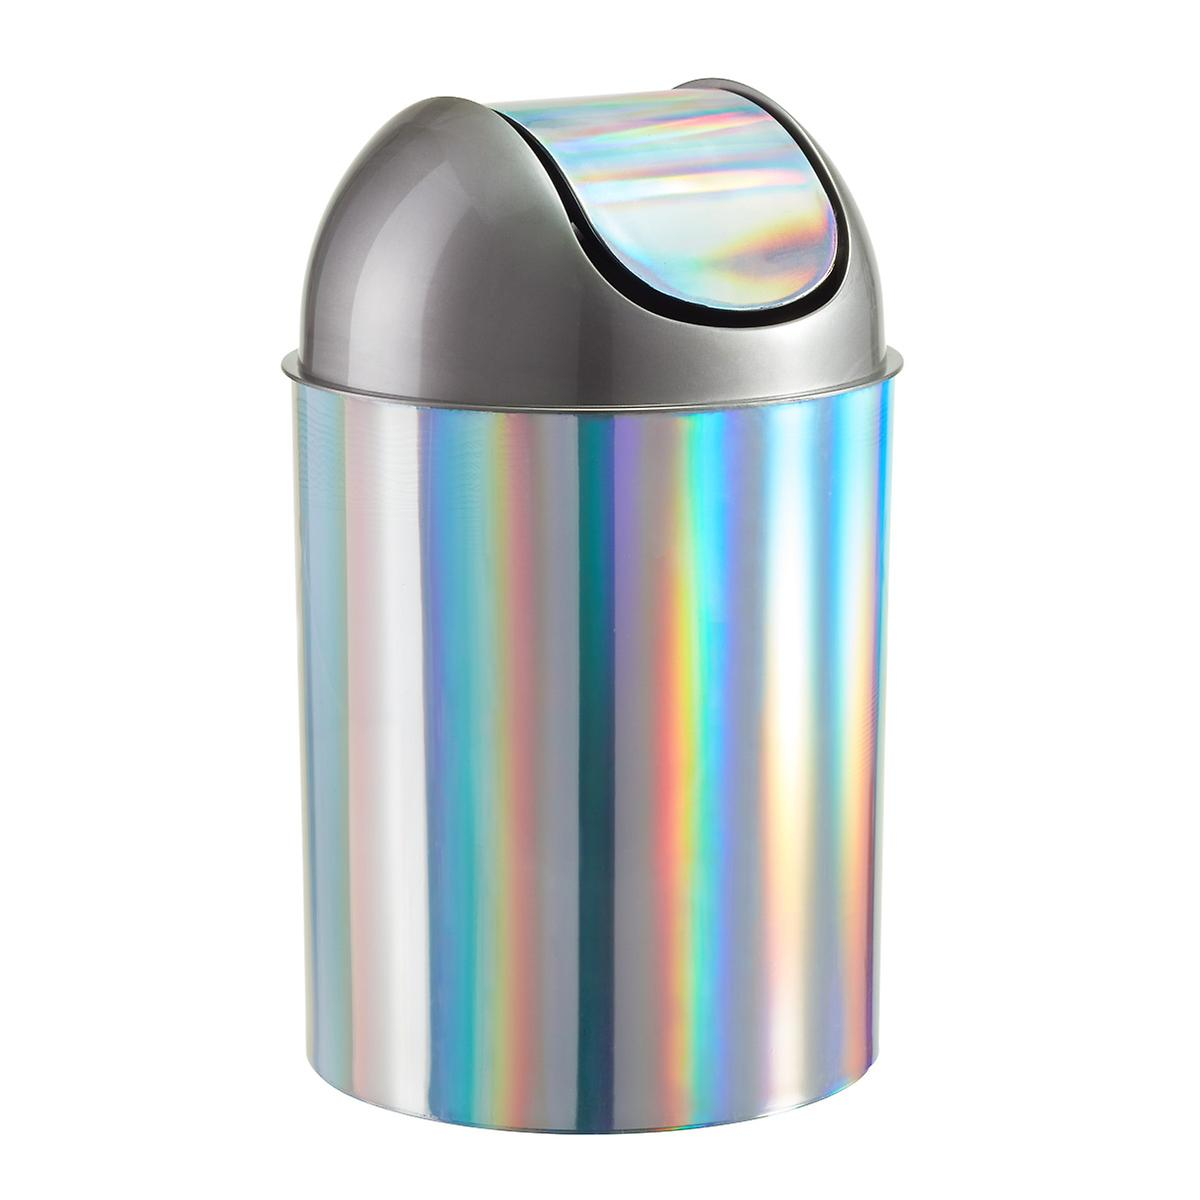 simplehuman trash cans garbage cans  plastic trash cans  the  - umbra  gal rainbow mezzo swinglid trash can